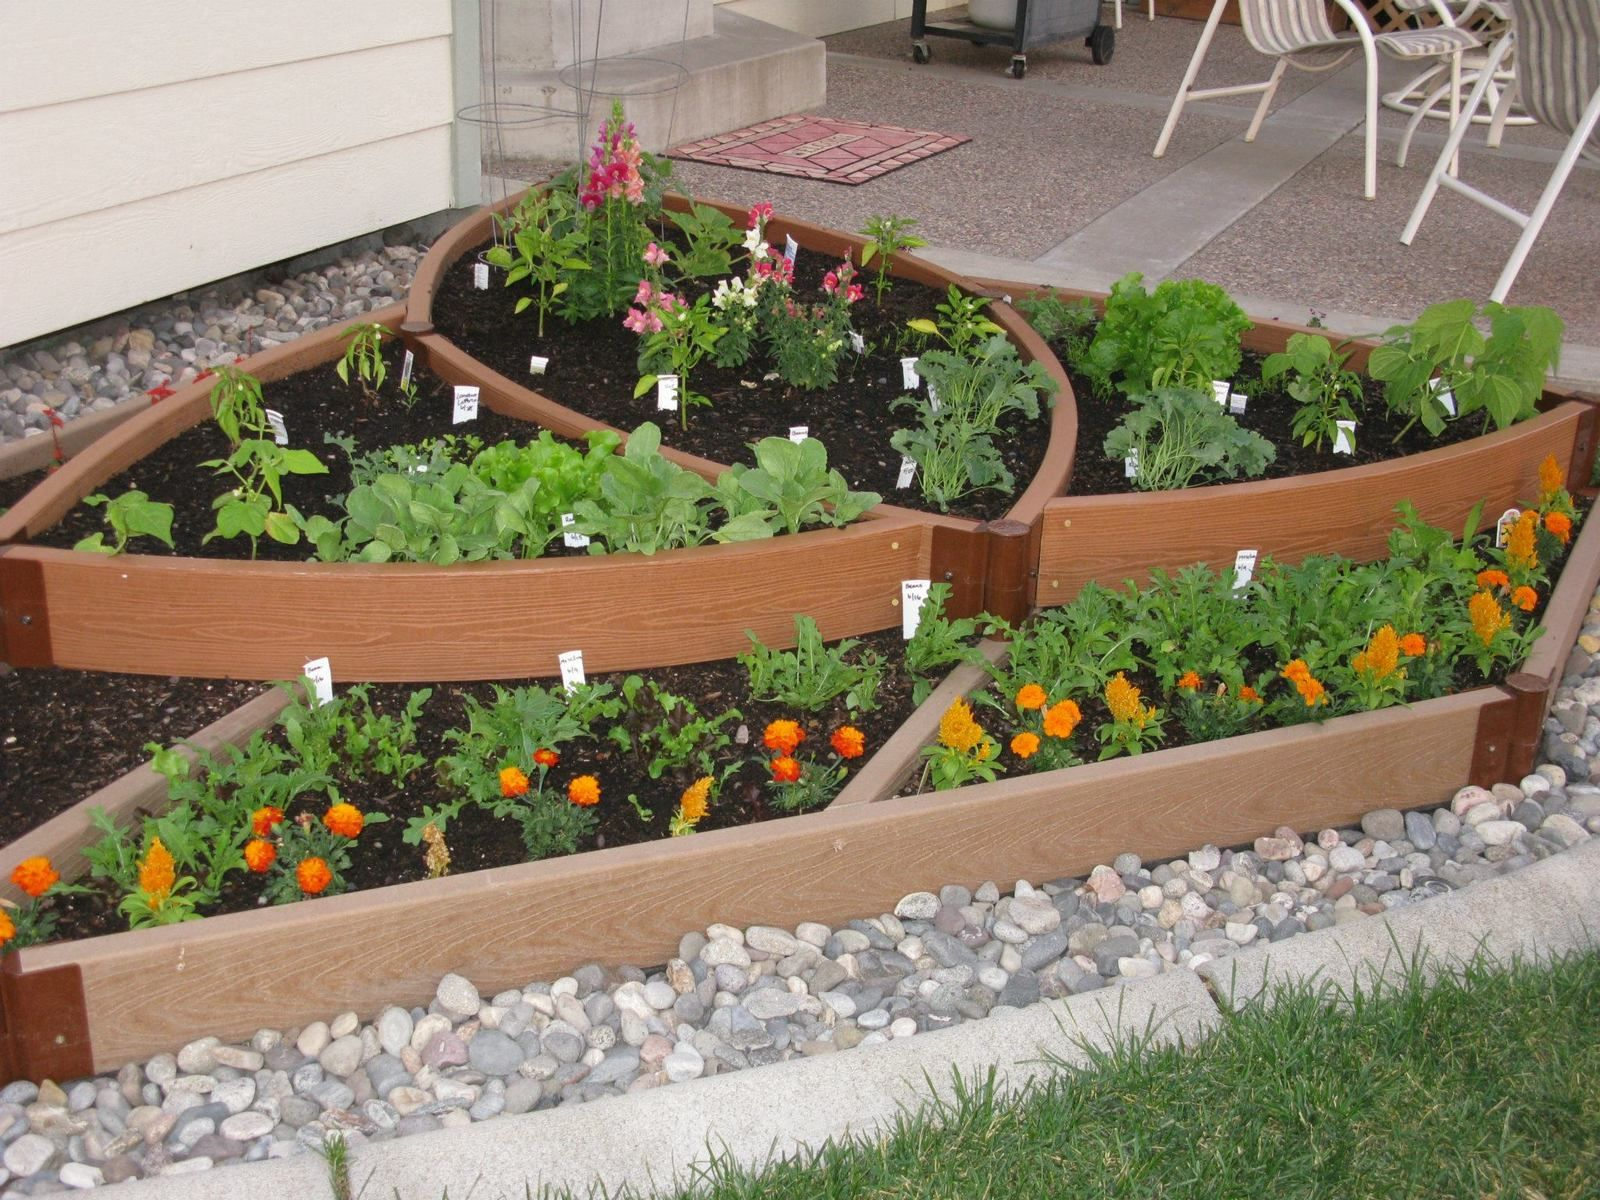 Designing A Vegetable Garden With Raised Beds 8x8 raised bed gated garden kit Find This Pin And More On Gardening In Raised Beds Vegetable Garden Design